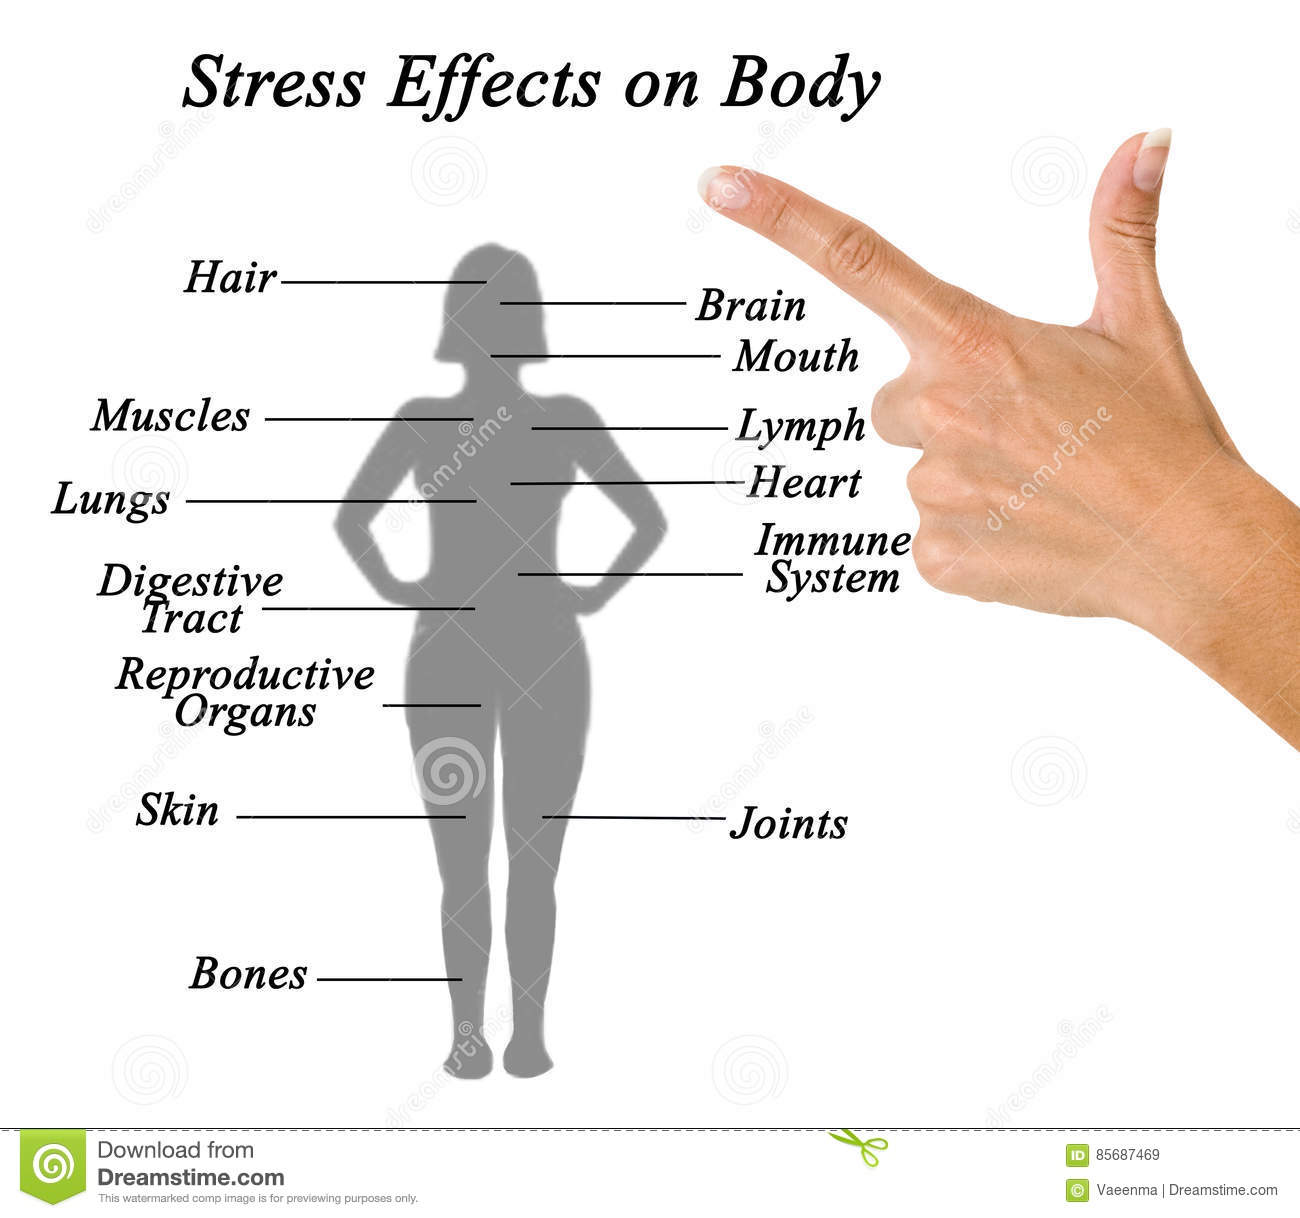 hight resolution of stress effects on body stock image image of hand female 85687469 effects of stress on the body a diagram